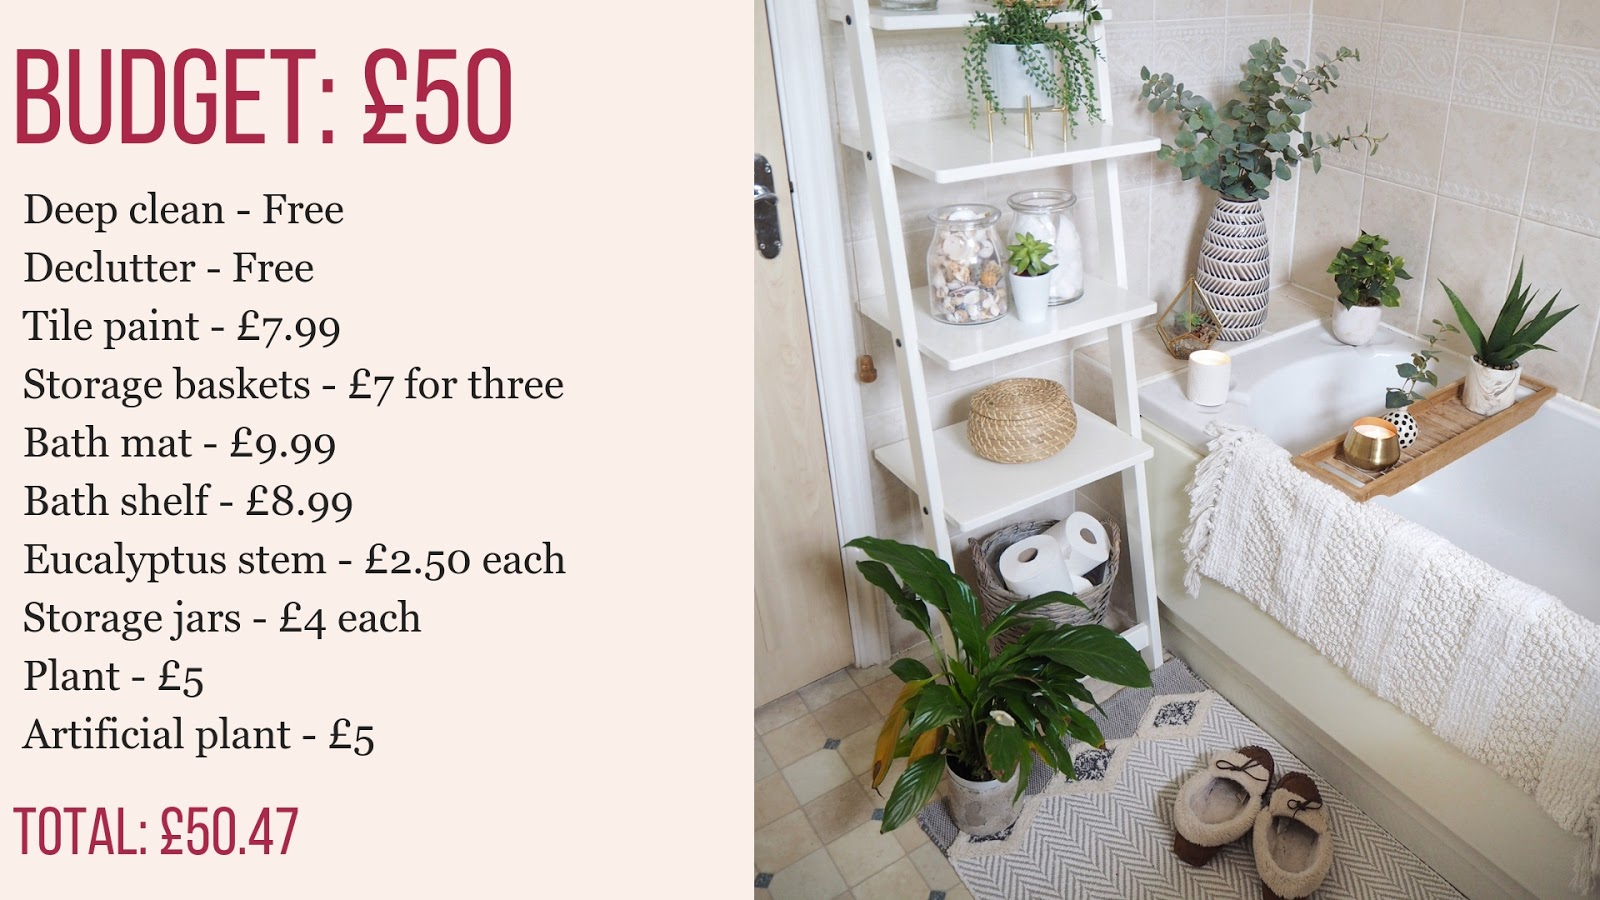 Budget bathroom updates for small budgets from £50 to £750. Including replacing fixtures and fittings such as sink and bath tub, adding a ceramic tiles floor and using accessories to create a cosy spa-style bathroom sanctuary.